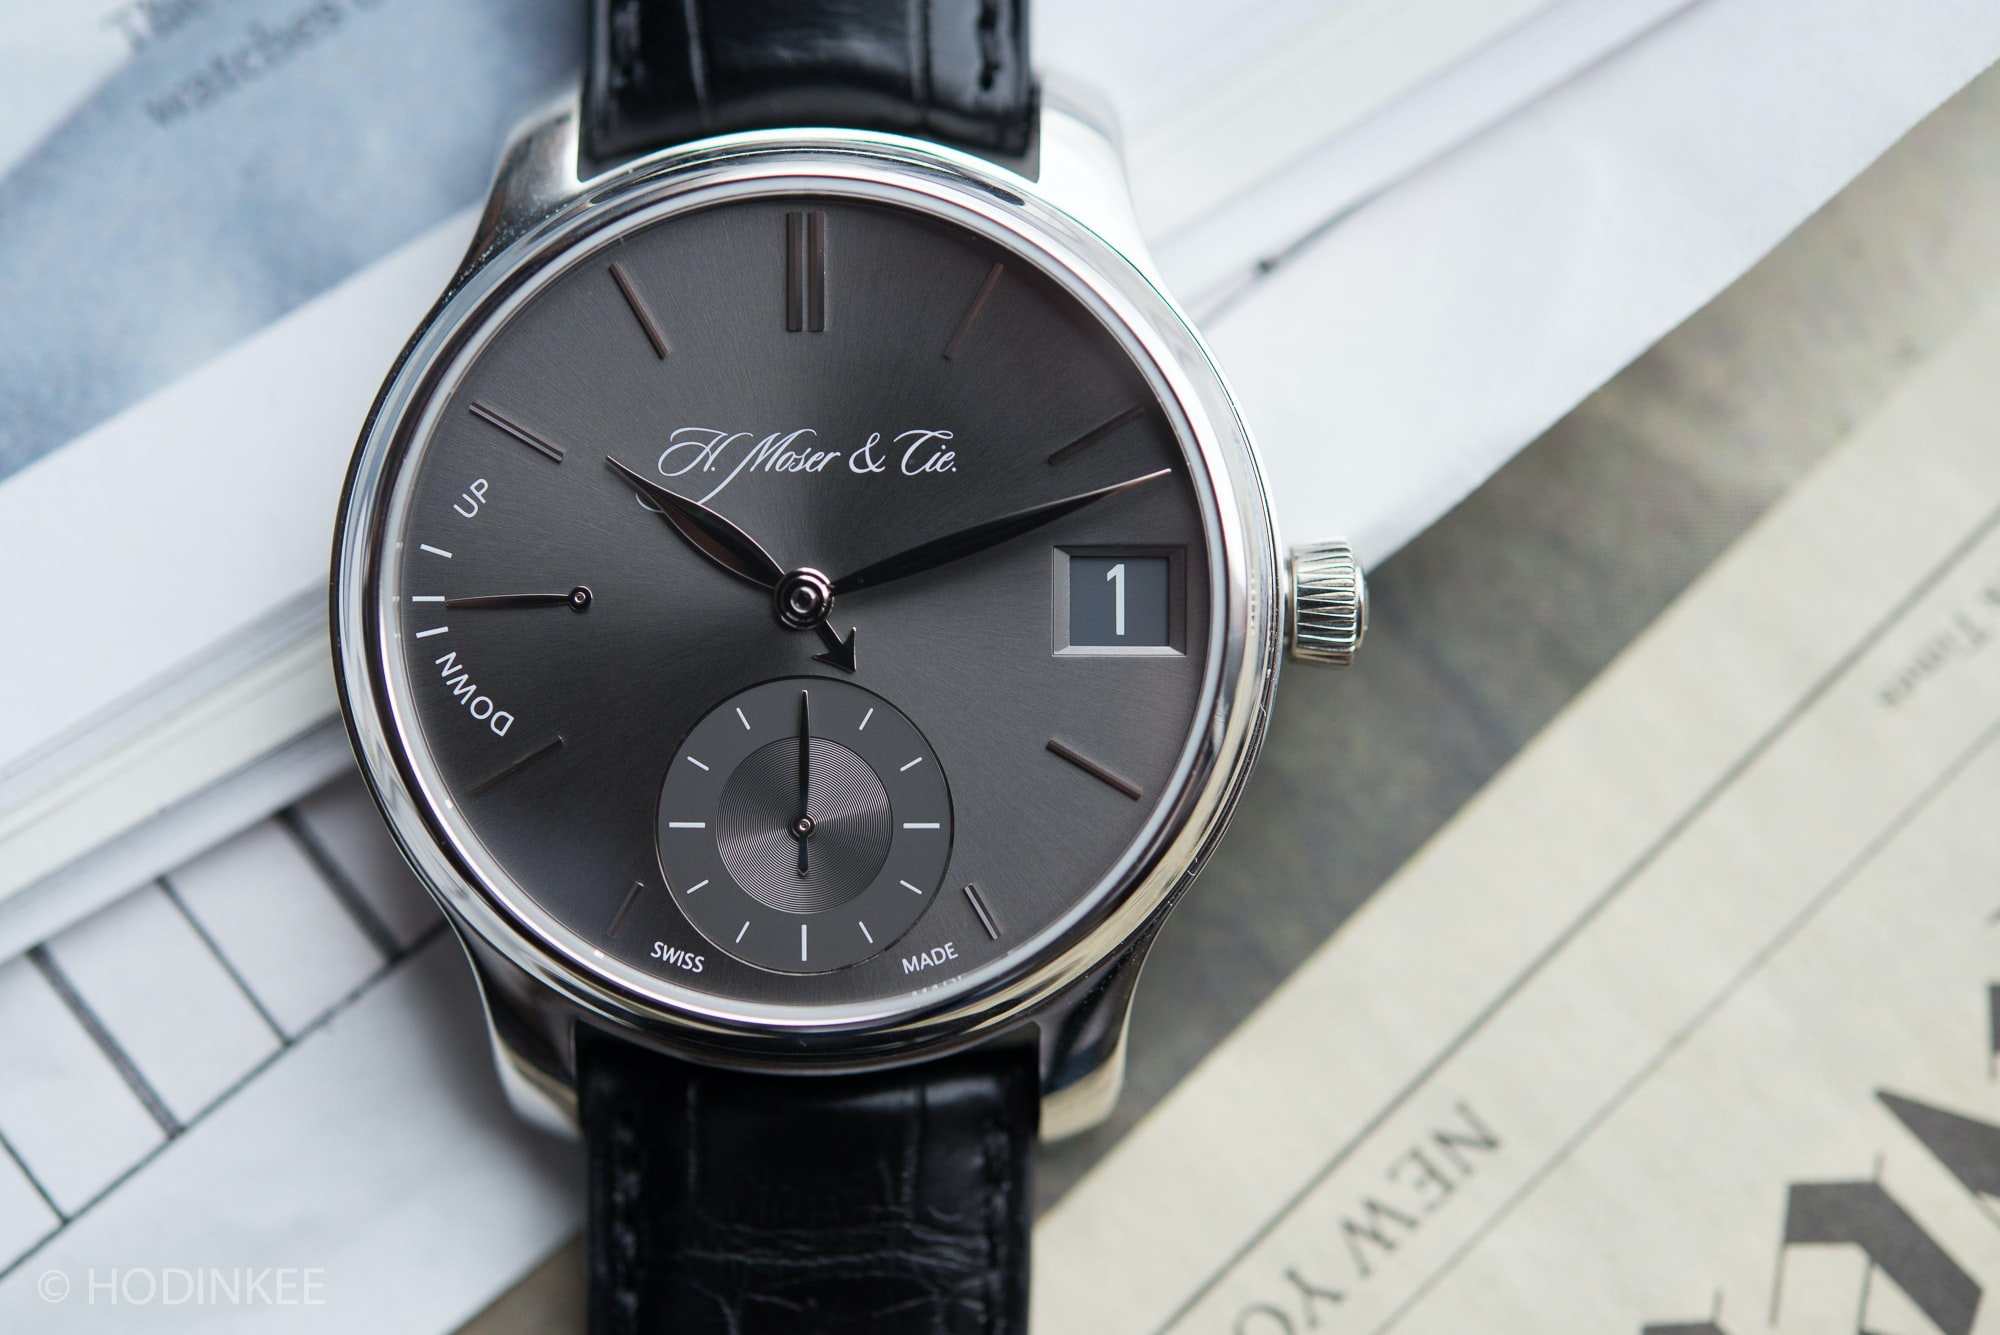 moser endeavor perpetual calendar  Editors' Picks: Five Date Displays Done Well HMoserEndeavourPerpetual 1